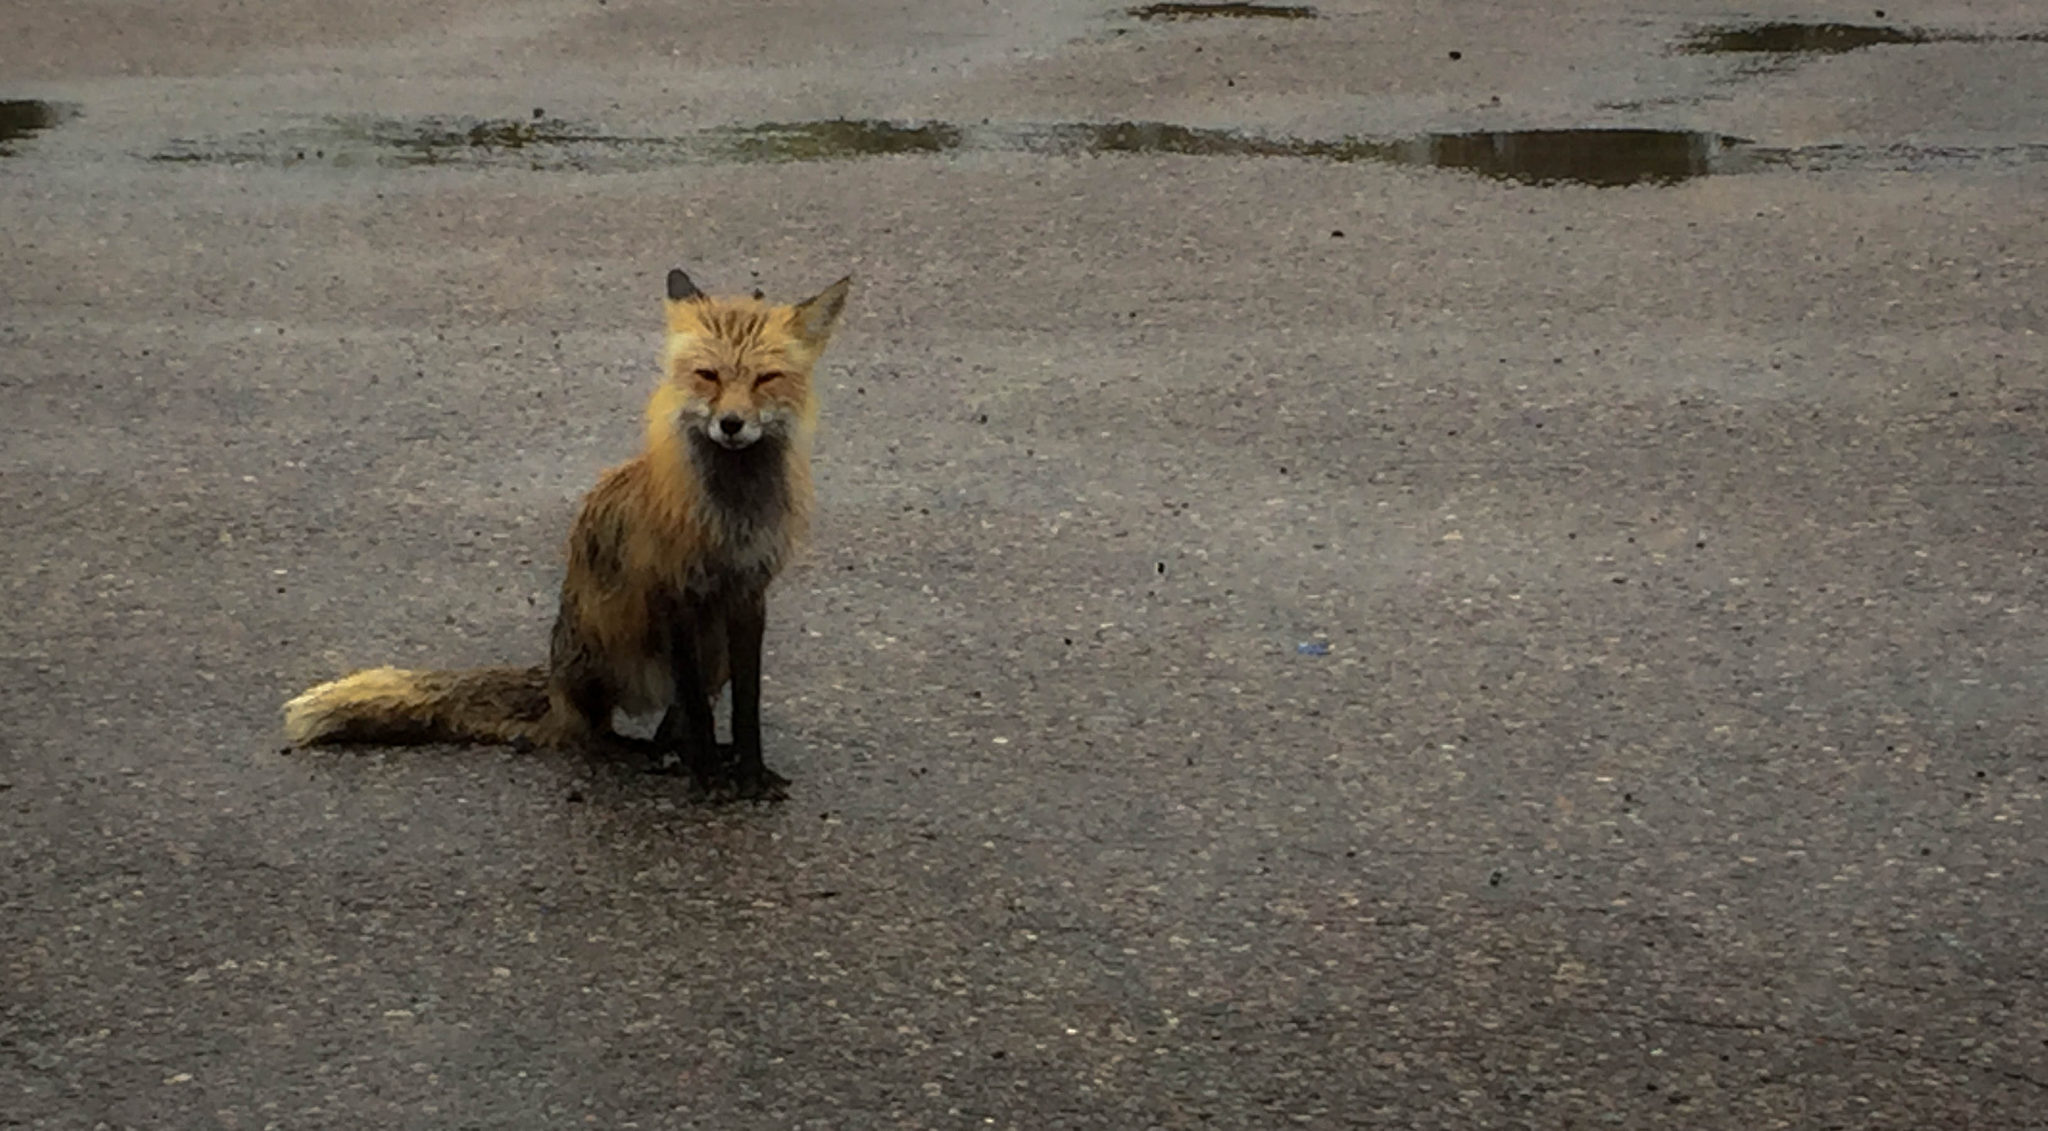 Soaking wet fox in parking lot in Kenora, Ontario